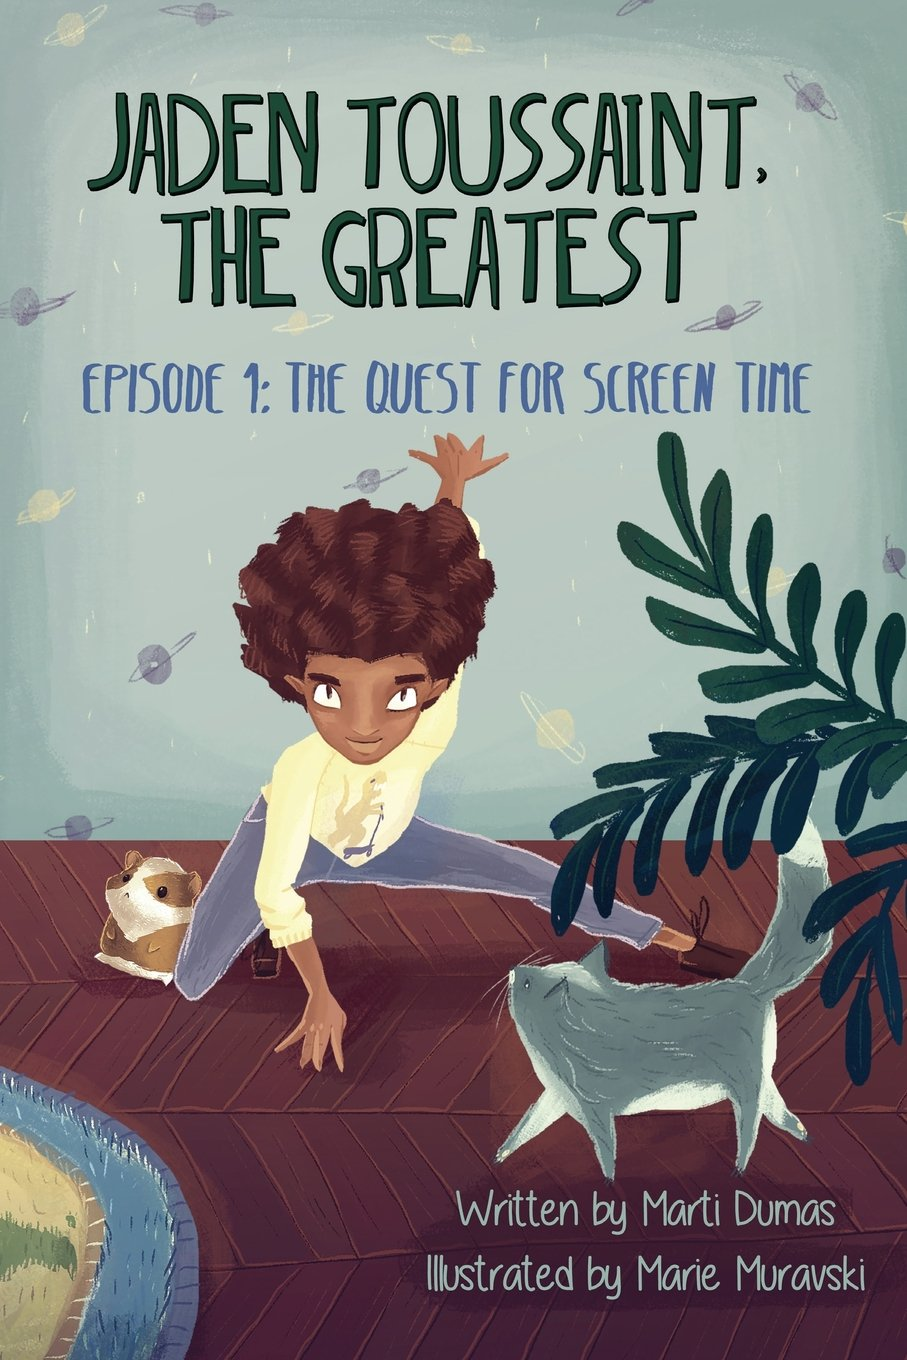 Jaden Toussaint, the Greatest Episode 1: The Quest for Screen Time - Dumas Marti